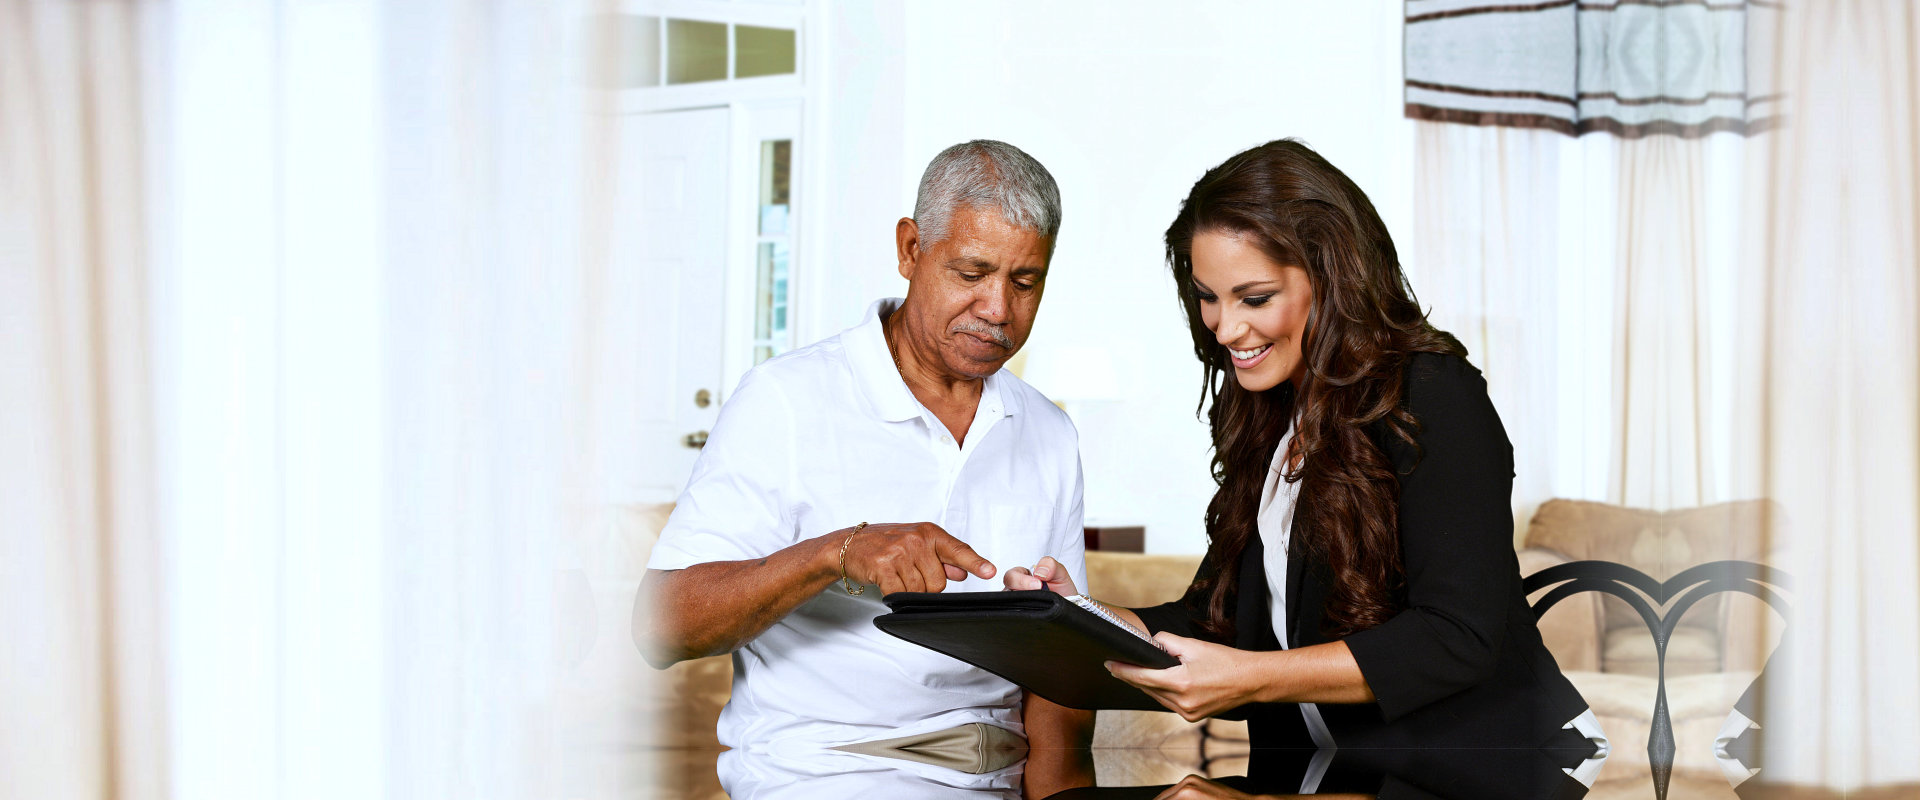 caregiver showing some documents to elderly patient